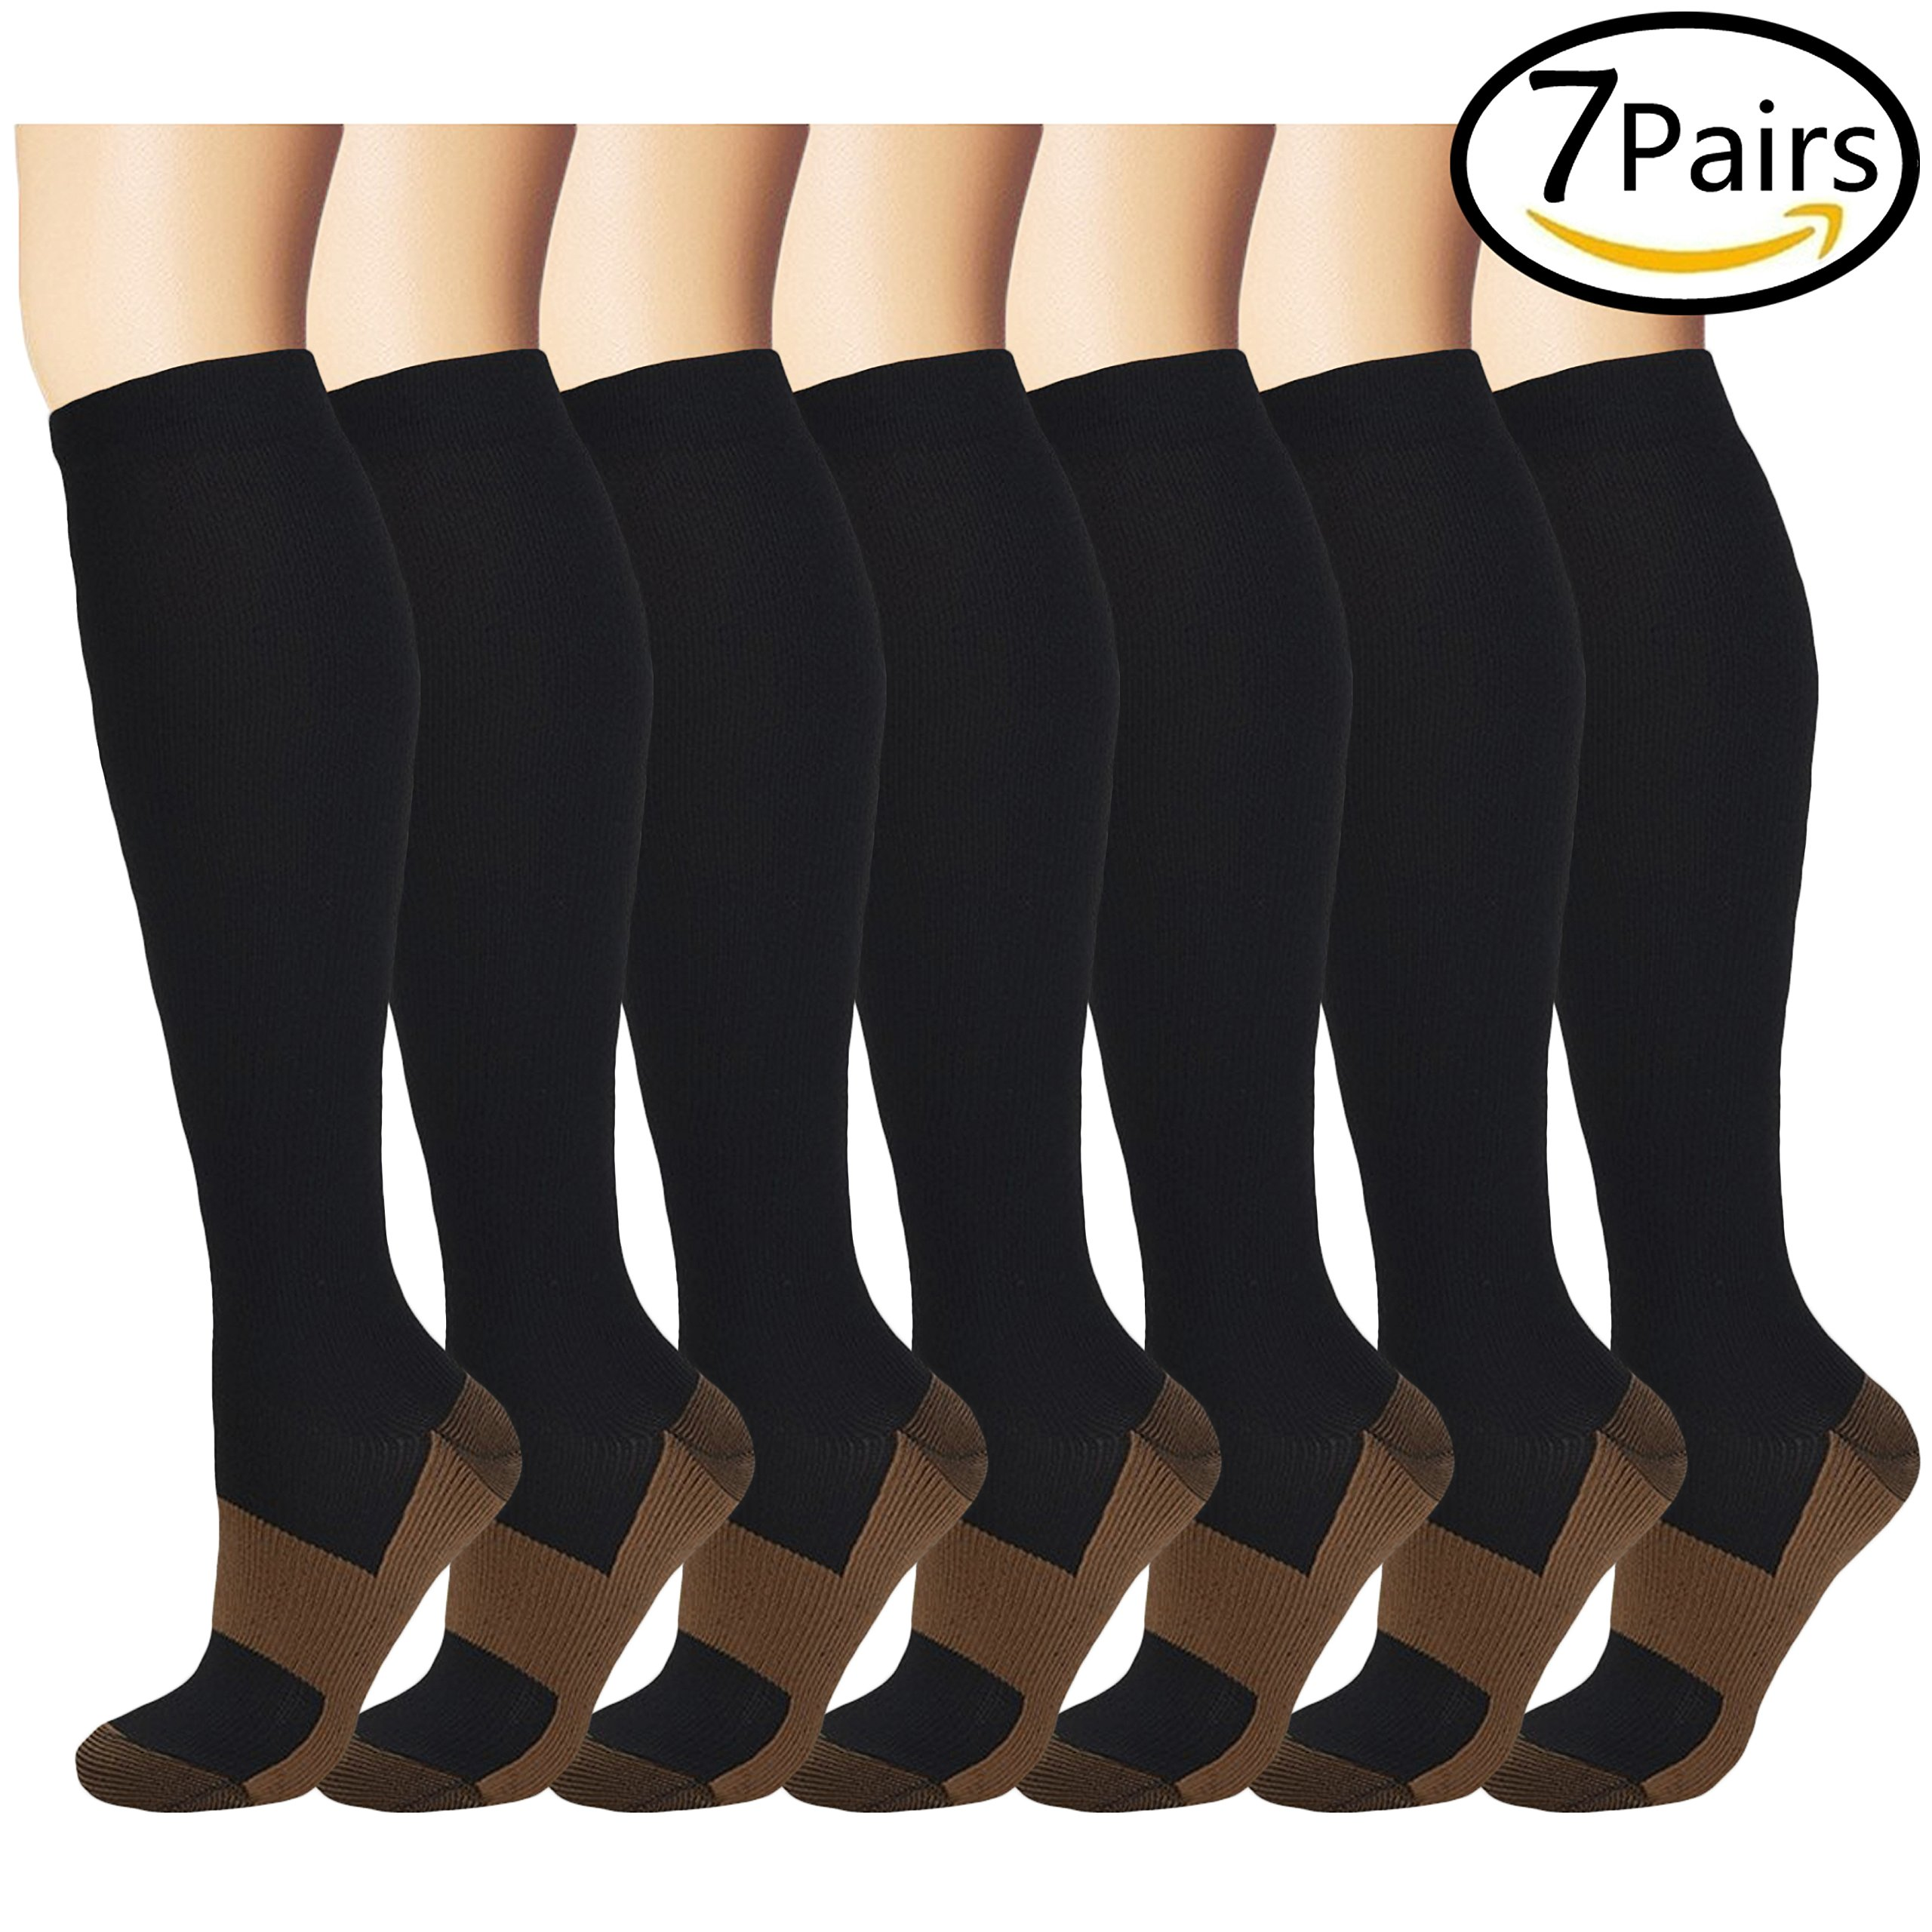 Copper Compression Socks (7 Pairs) for Women and Men - Best Medical, Nursing, for Running, Athletic, Edema, Diabetic, Varicose Veins, Travel, Pregnancy & Maternity - 15-20mmHg (Large/X-Large, Black)